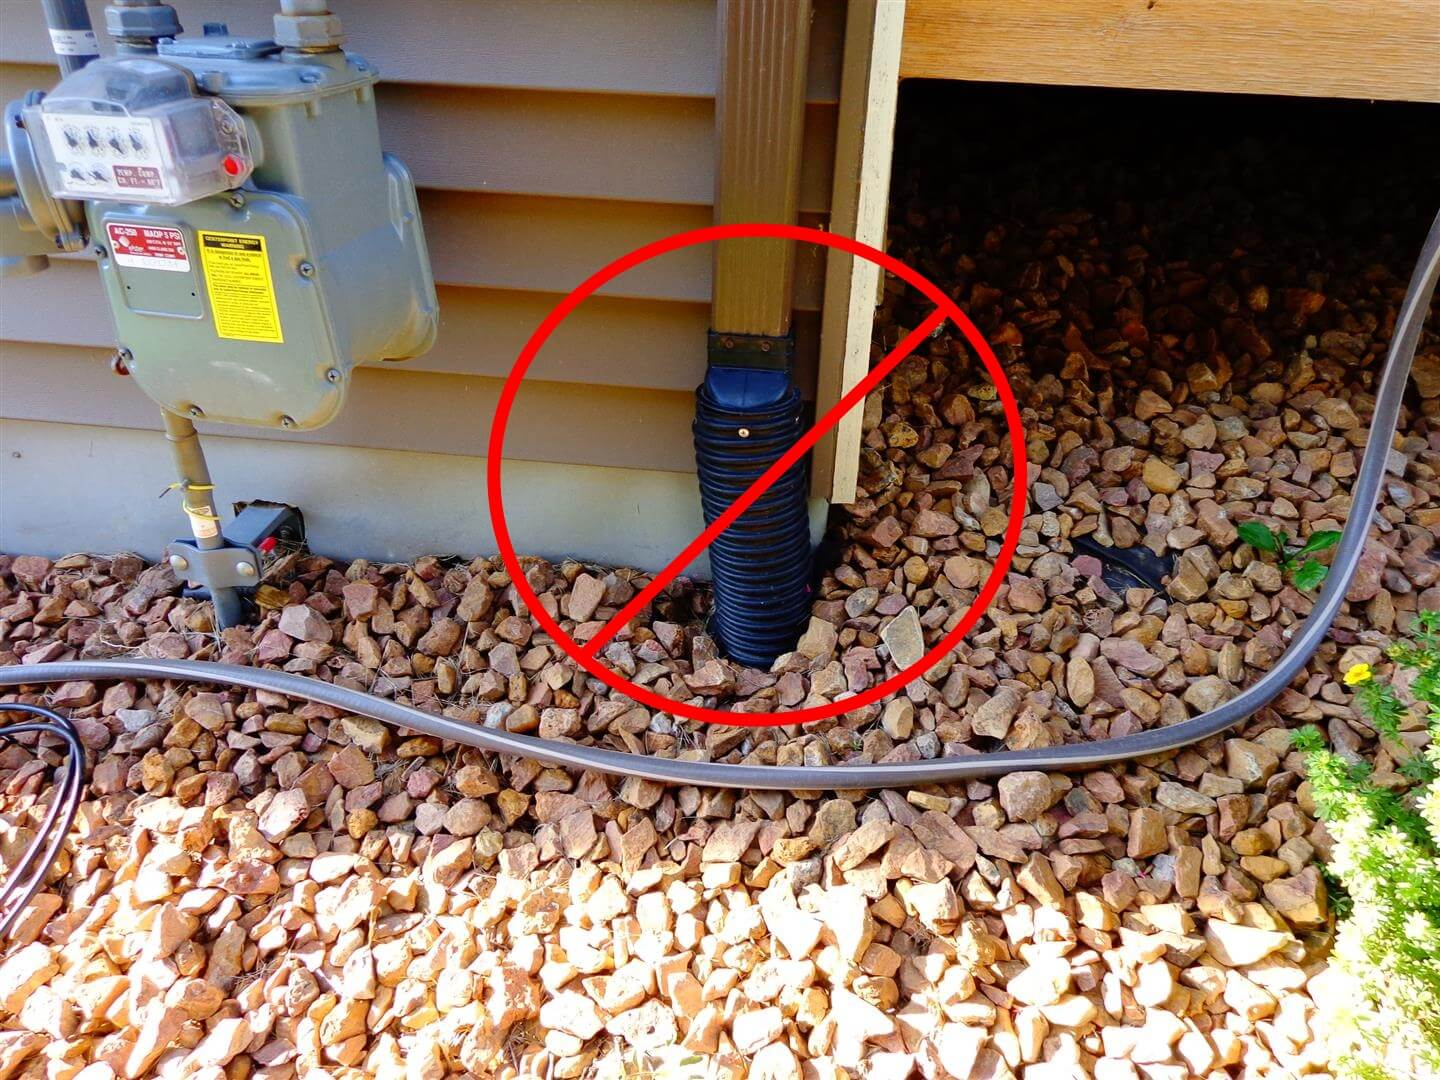 How to install a downspout in a gutter - While A Blocked Sump Pump Discharge Can Lead To A Wet Basement So Can Blocked Downspouts The Home Pictured Below Had A Downspout Discharging Directly Into